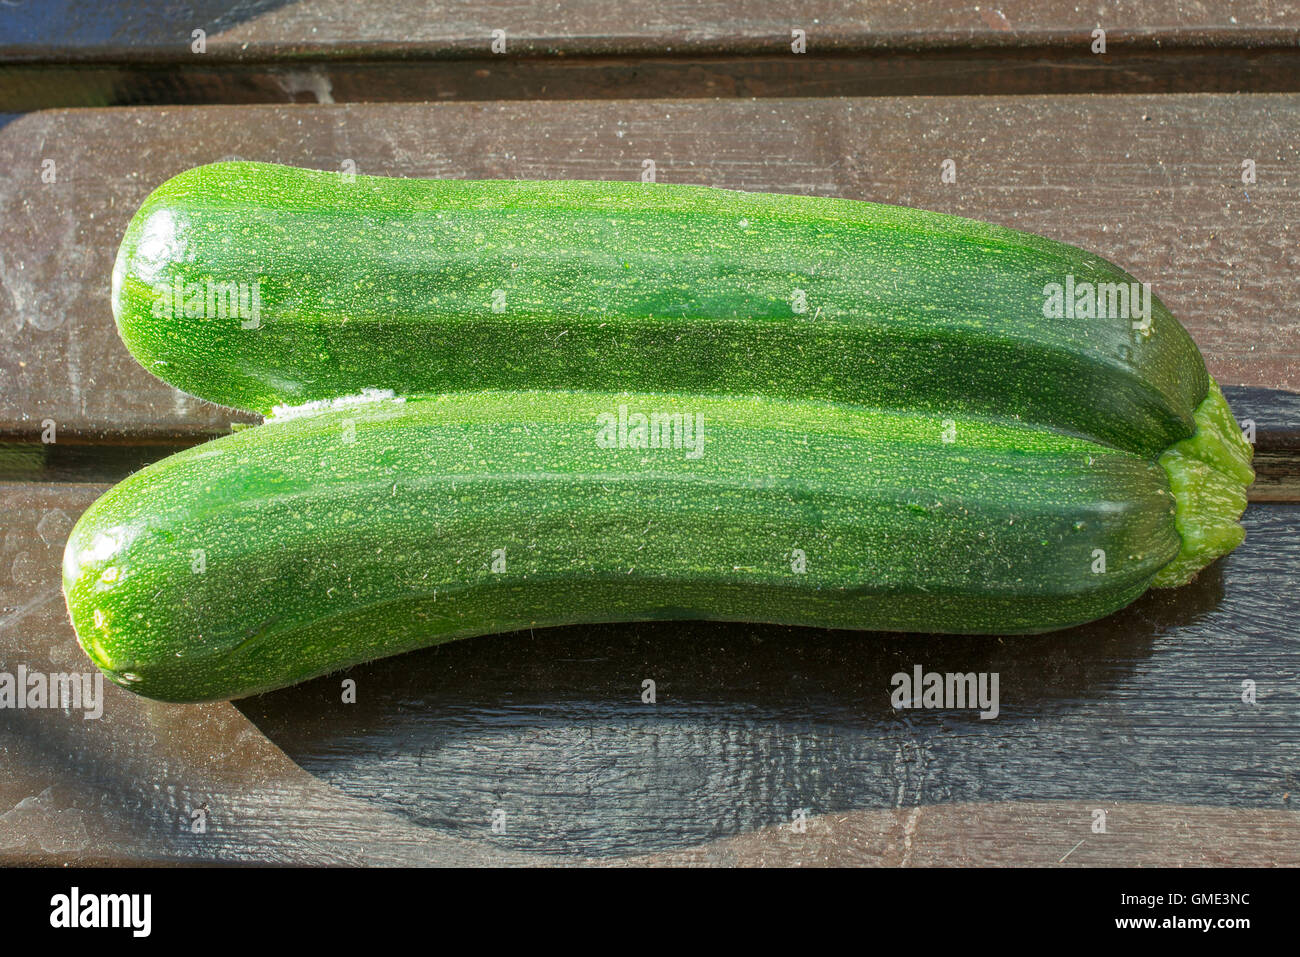 a-pair-of-conjoined-courgettes-variety-z